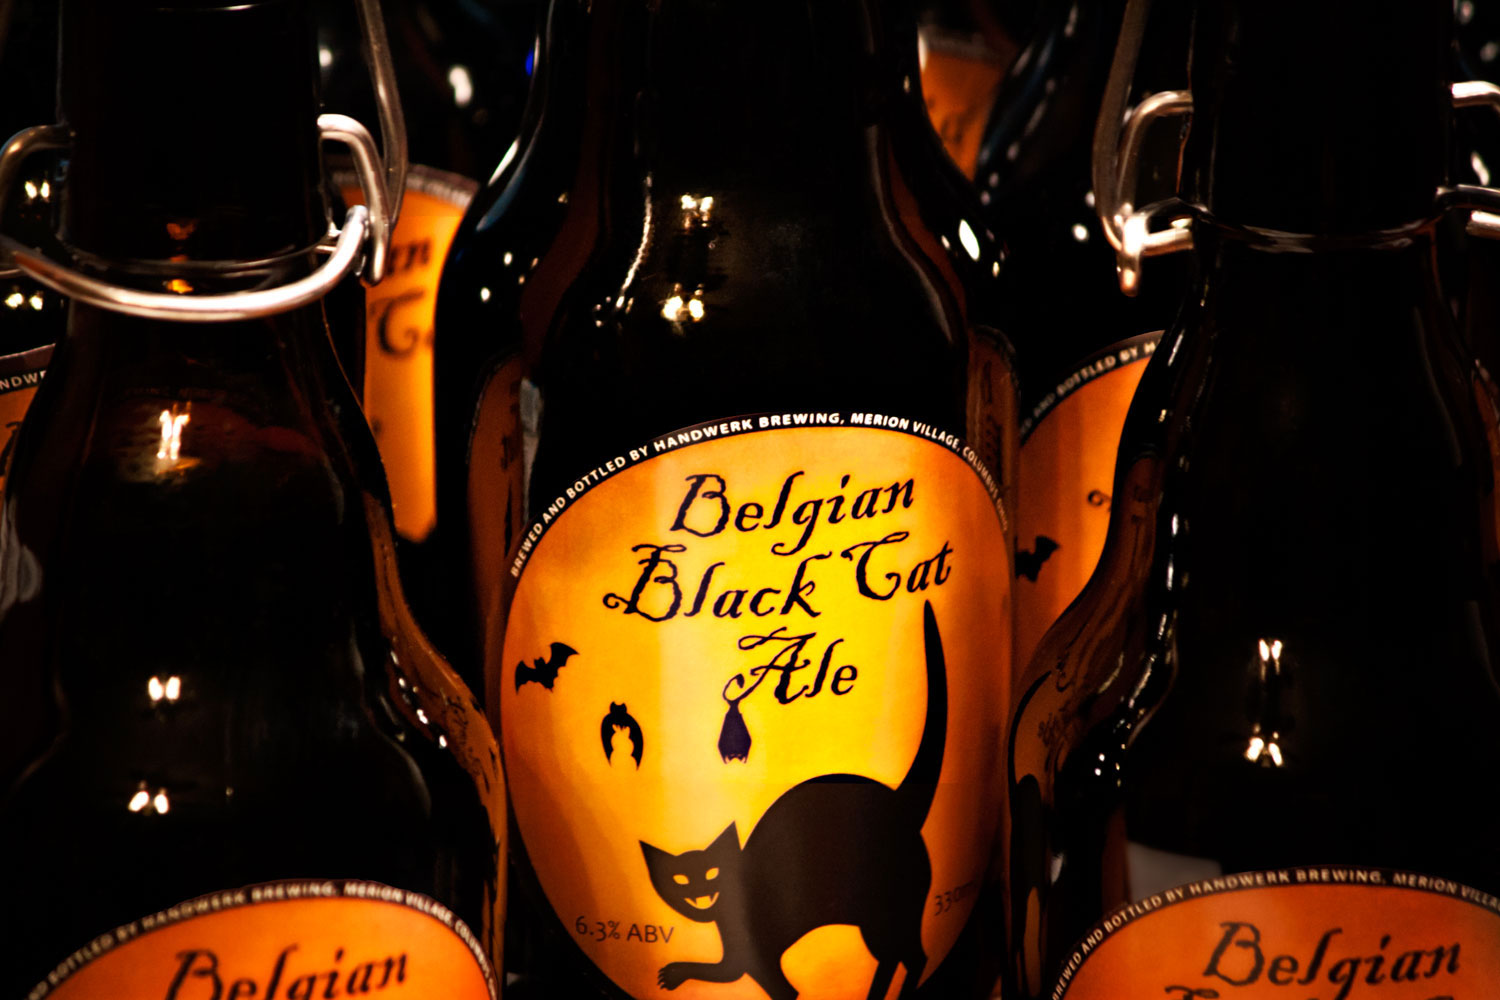 Belgian Black Cat Ale